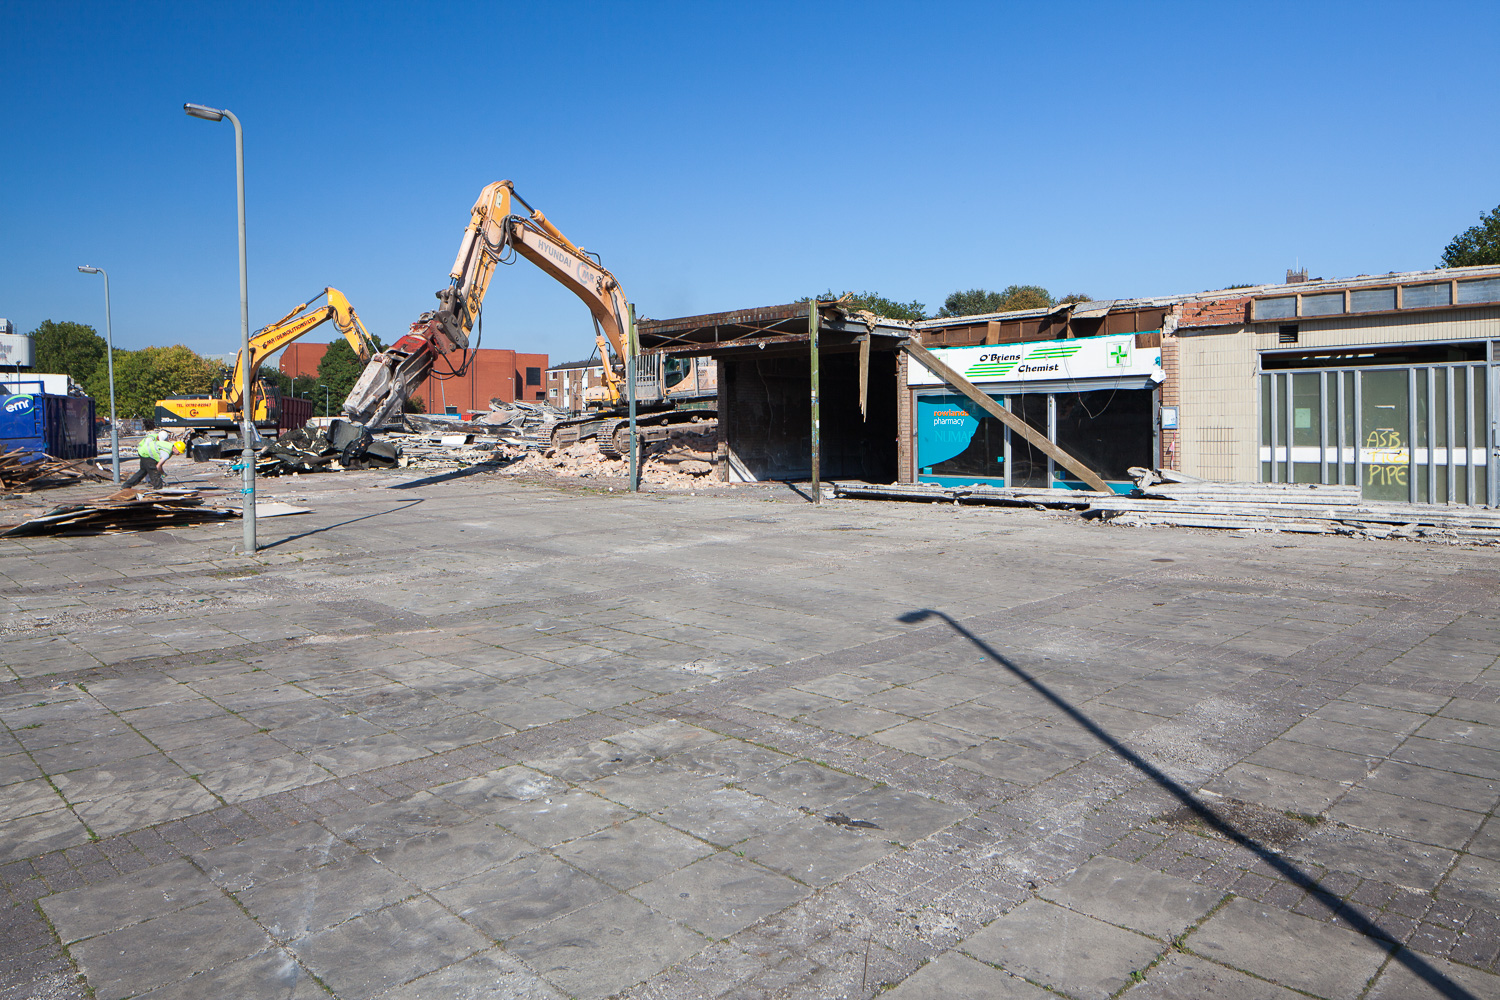 Gt Homer St Demolition_9_©Matthew Nichol Photography.jpg